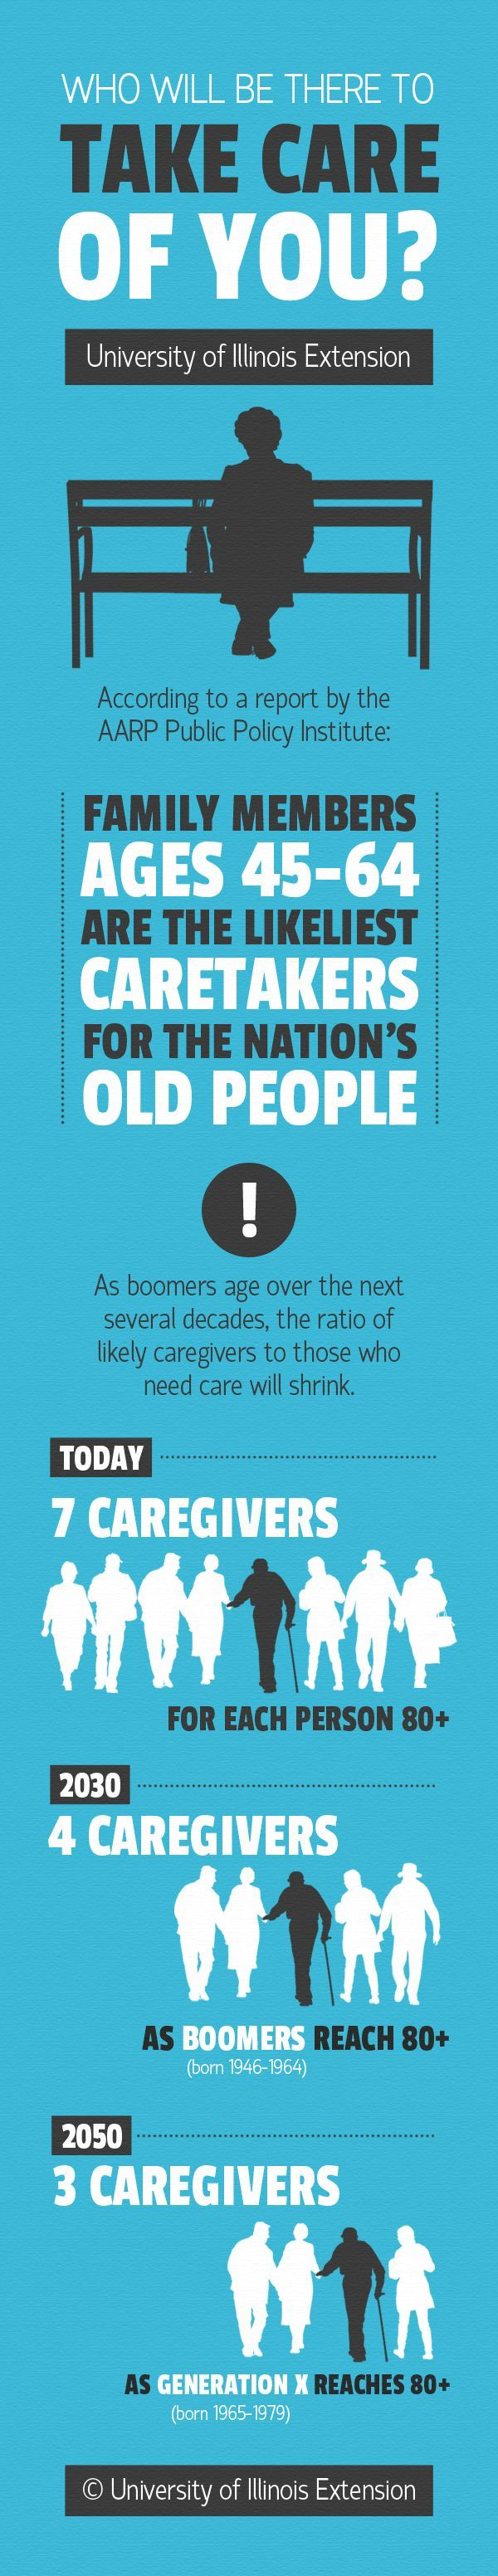 The pool of available caretakers for America's old people is on the decline. You may want to ask you